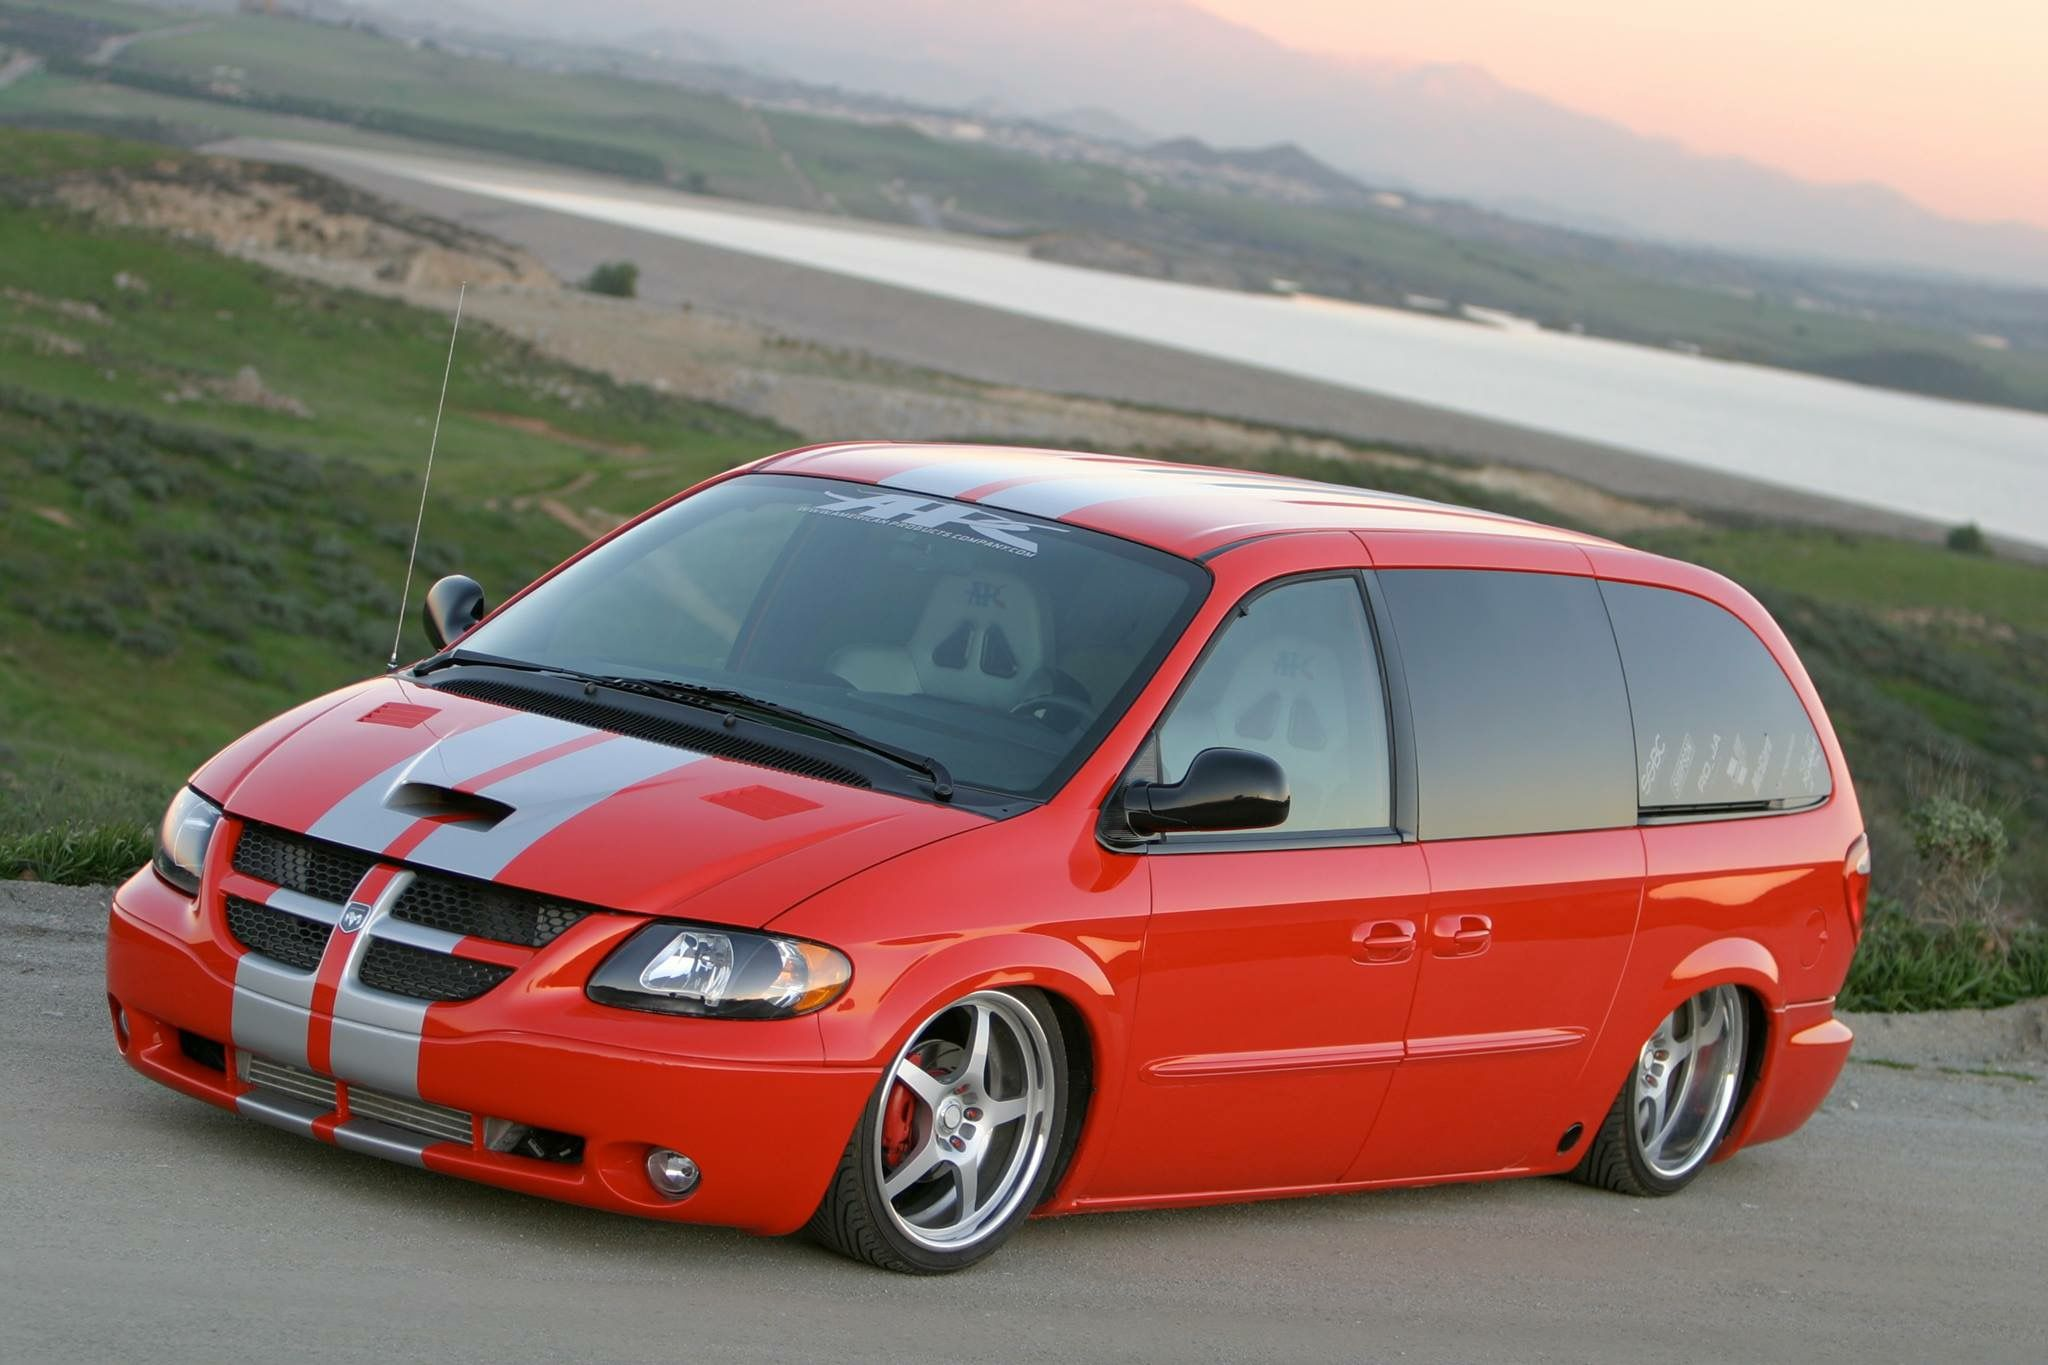 Pin By Justin Berry On Nice Rides Dodge Caravan Minivan Chrysler Voyager Grand Caravan